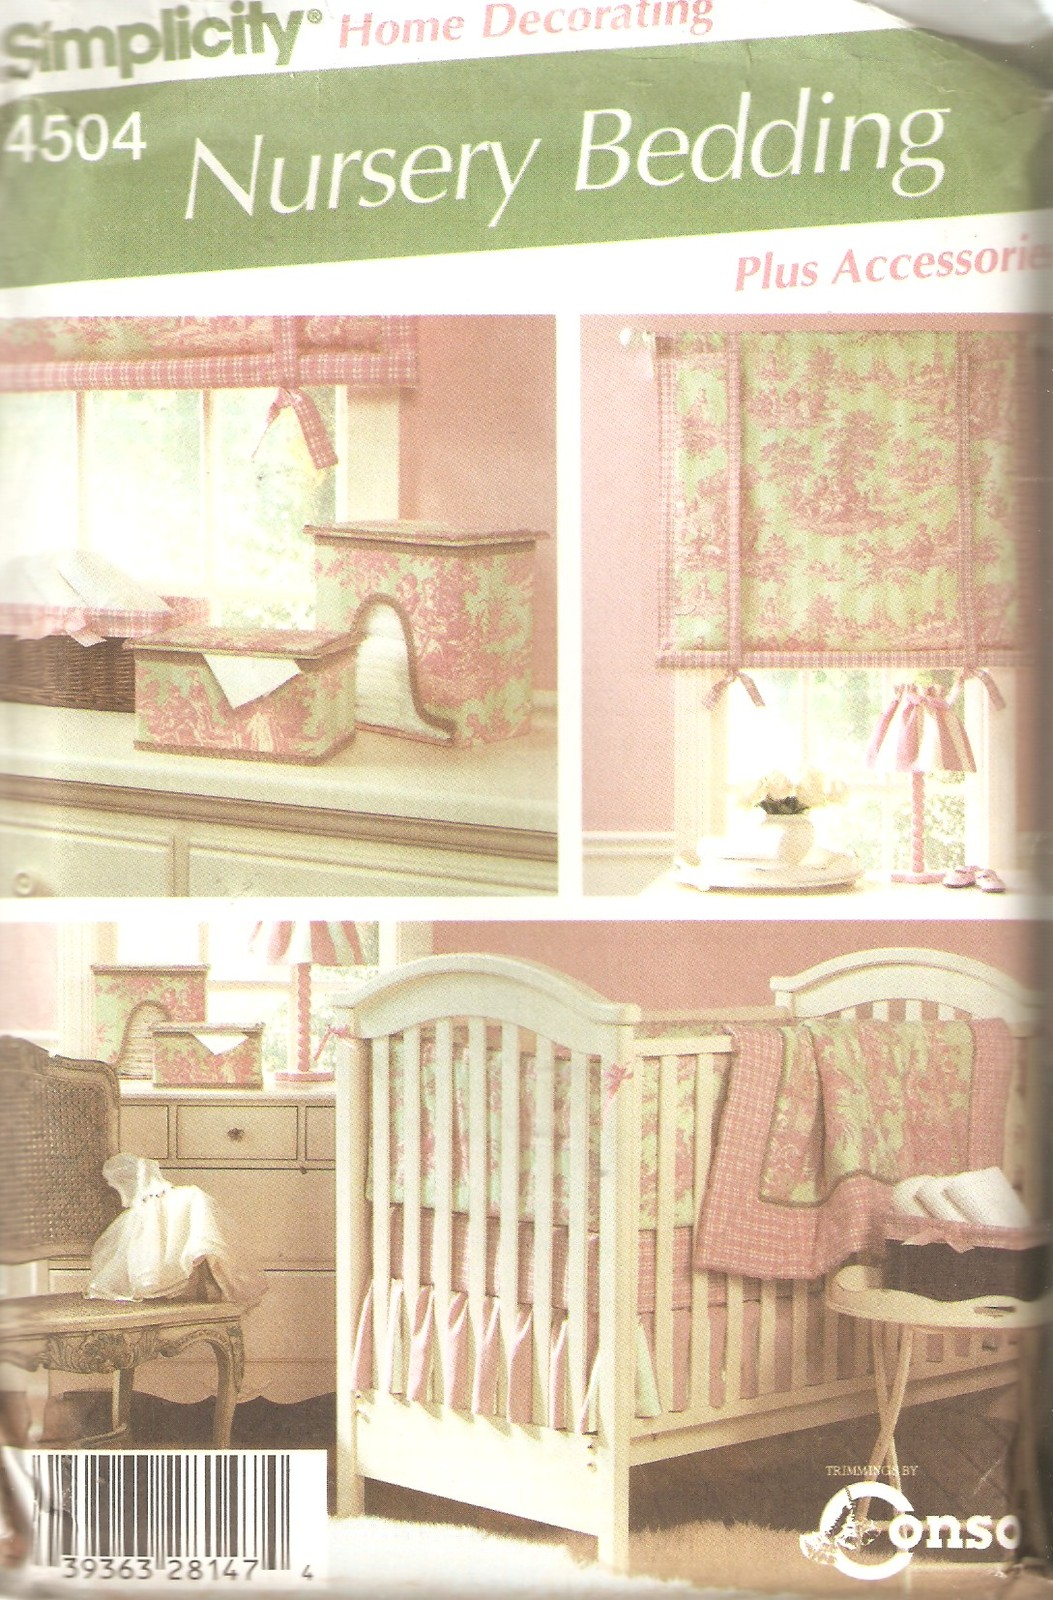 Nursery Bedding Accessories Sewing Pattern Simplicity Home Decor 4504 Uncut 1